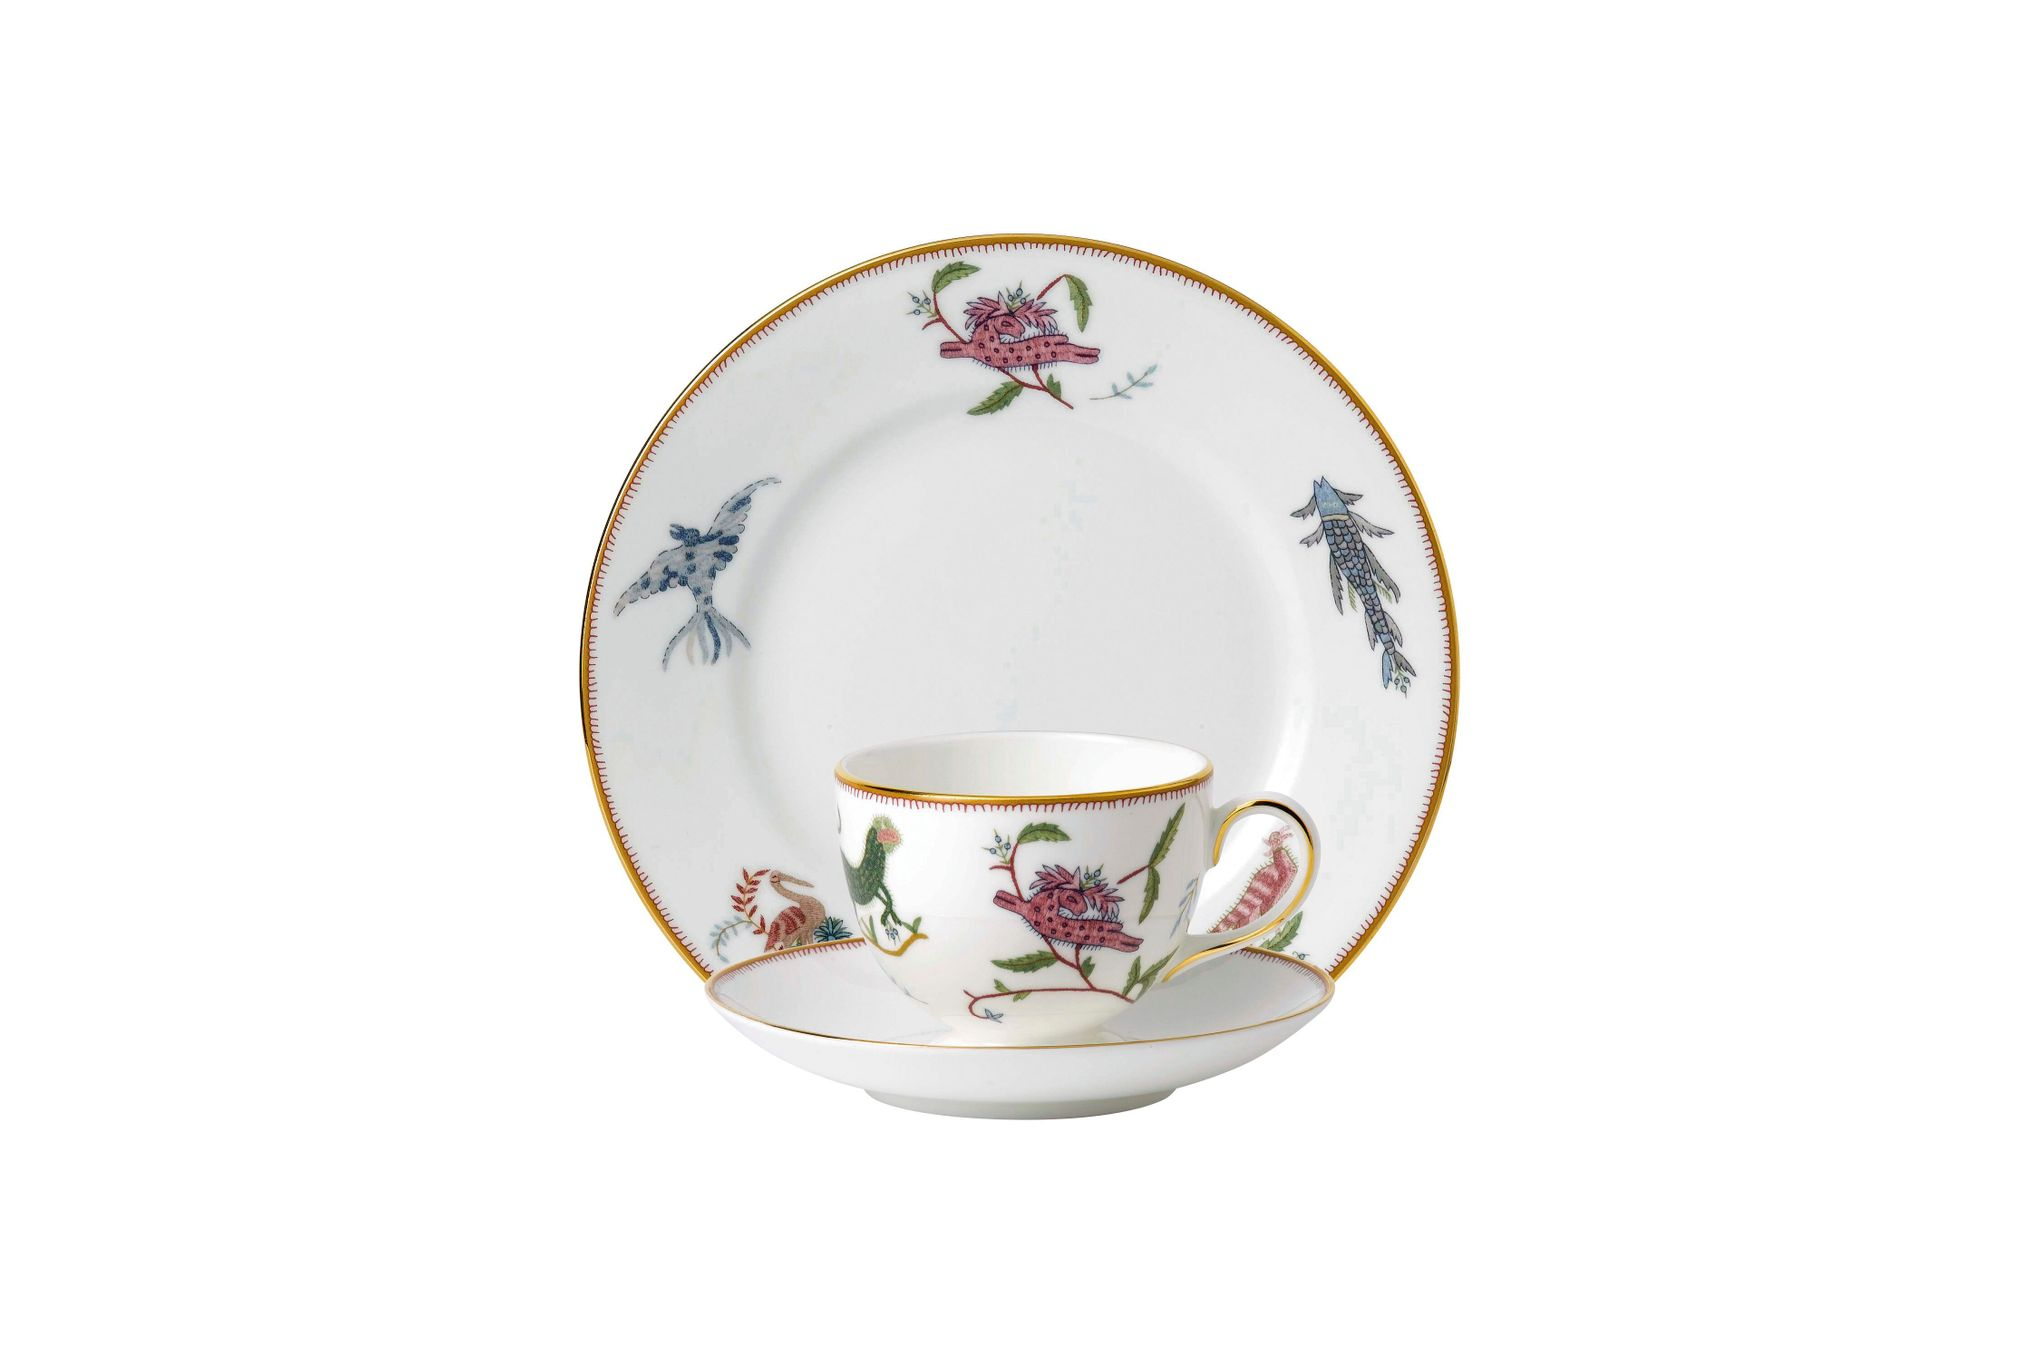 Wedgwood Mythical Creatures 3 Piece Set Teacup & Saucer, Plate Set Gift Boxed thumb 1